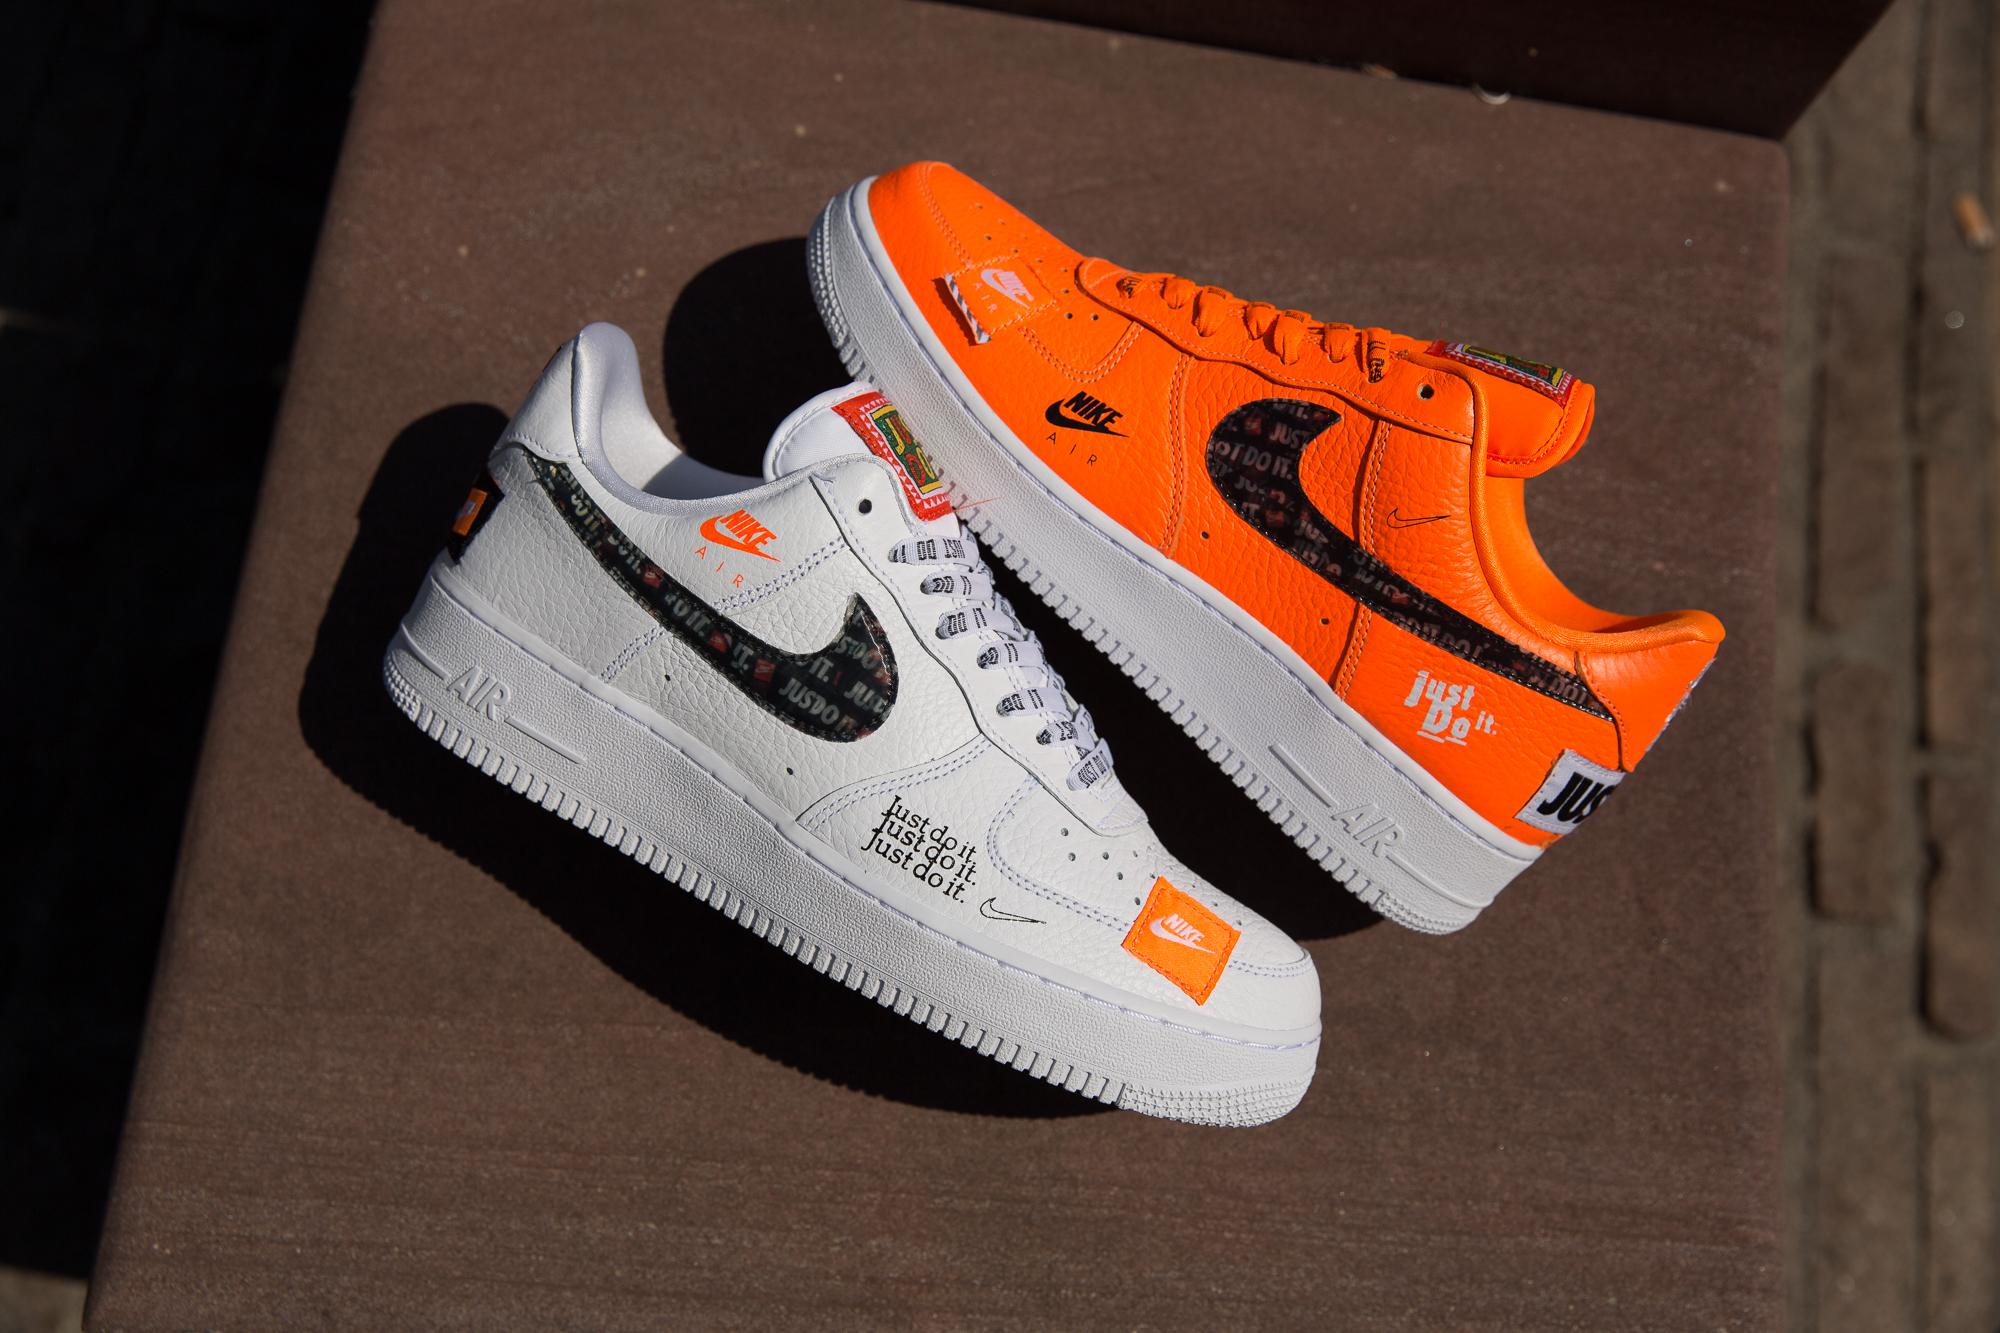 Nike Air Force 1 'Just Do It' Pack